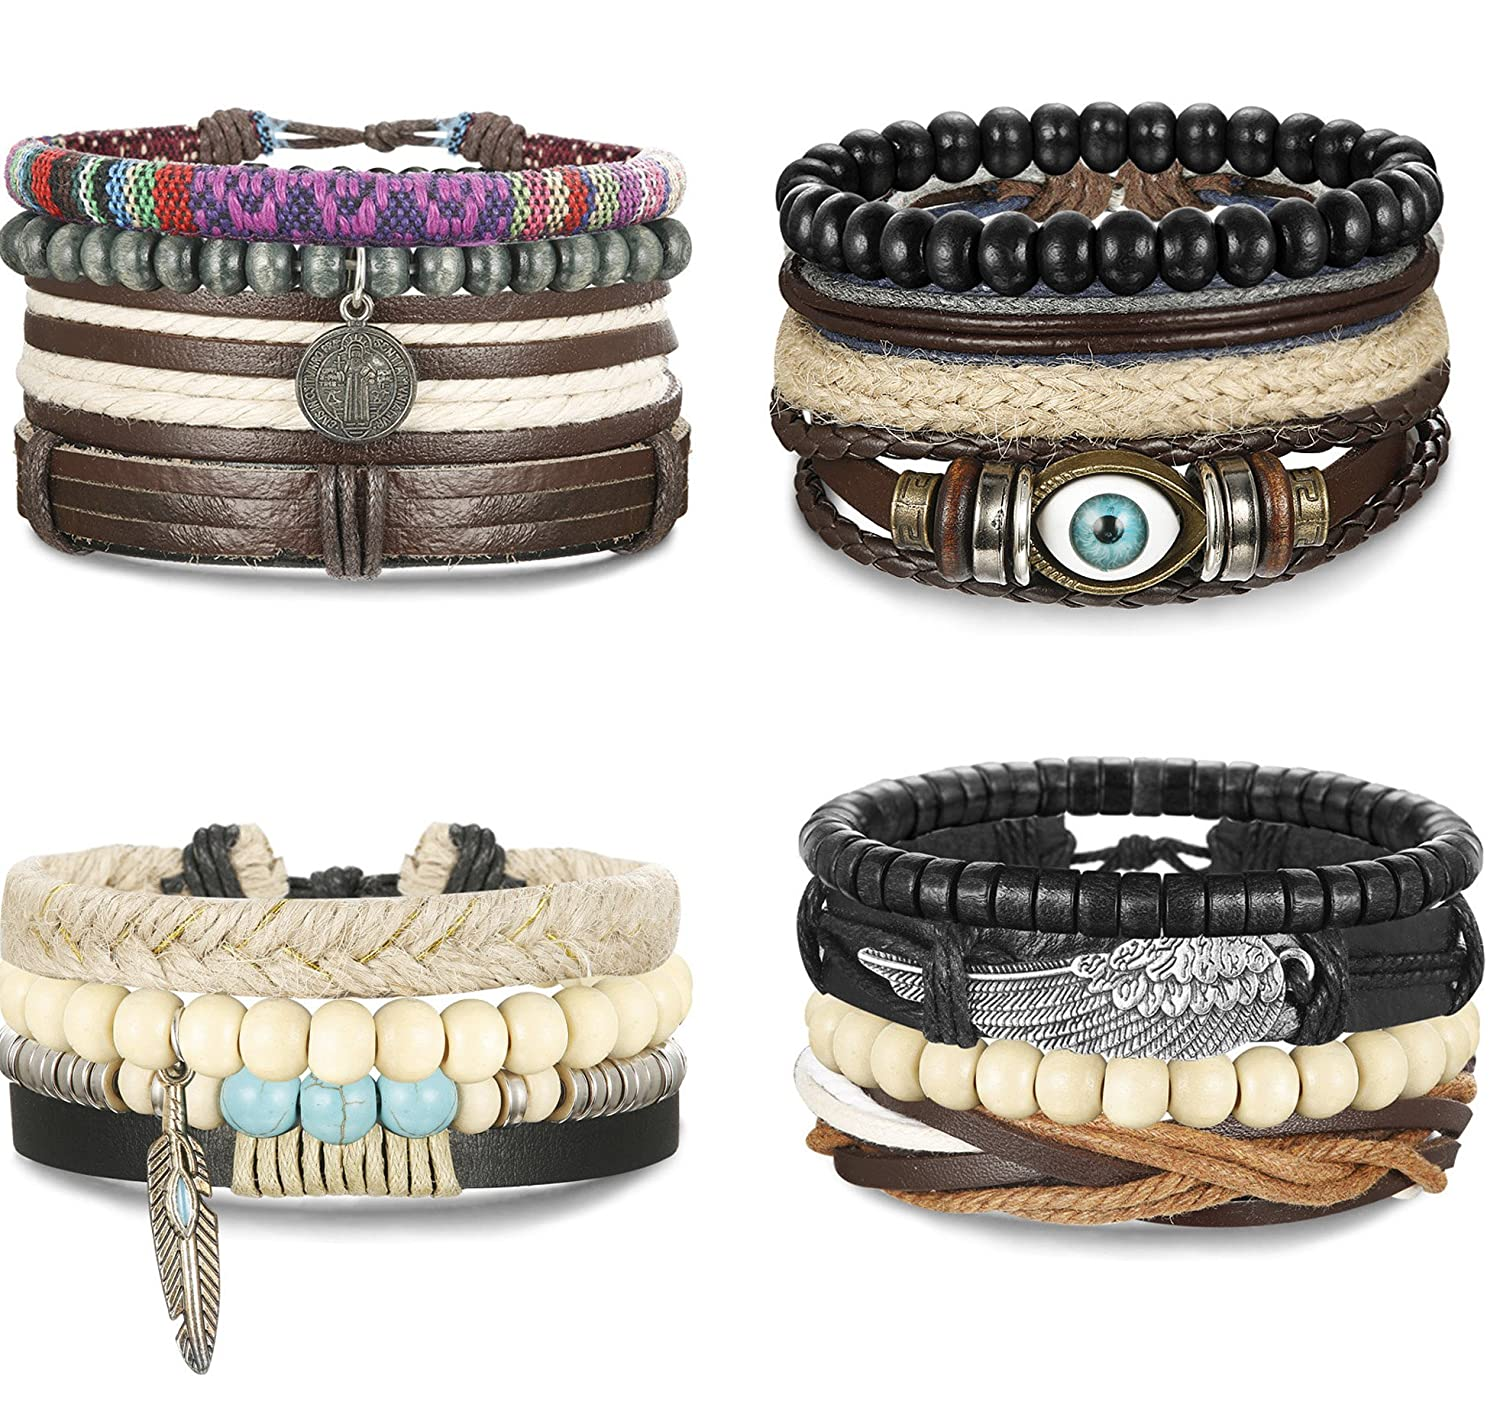 FIBO STEEL 15-16 Pcs Braided Leather Bracelets for Men Women Woven Cuff Bracelet Adjustable FS Bset3720-16FS